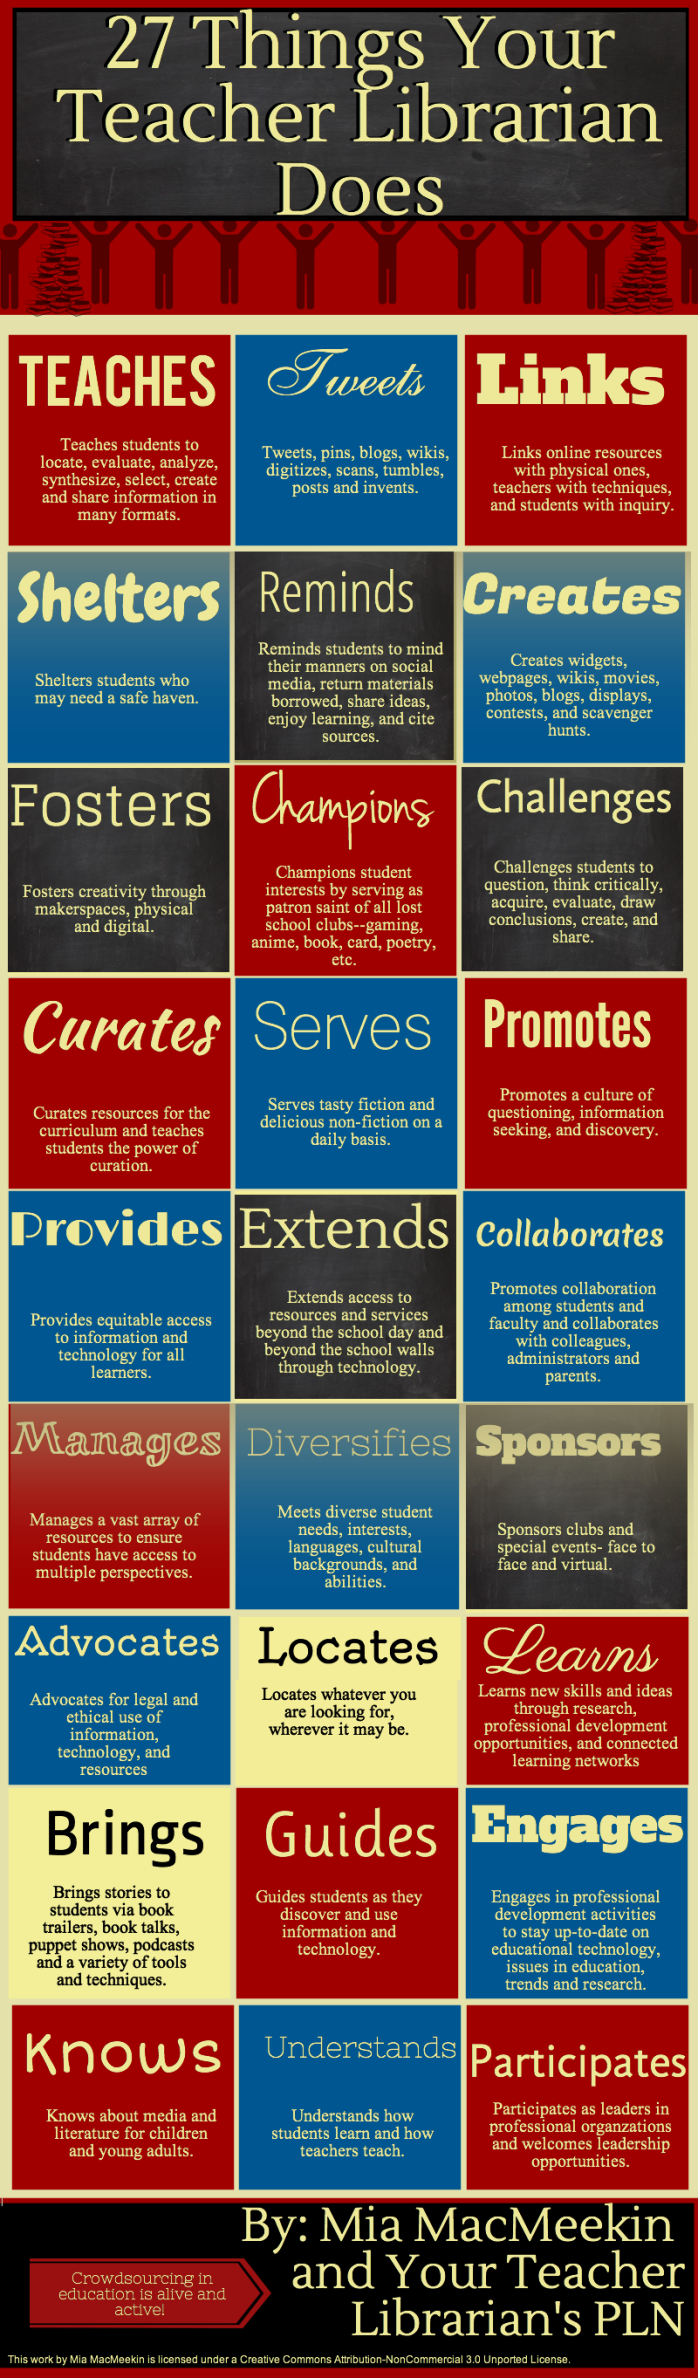 27 Things Your Teacher Librarian Does | Teacher librarian, Middle ...